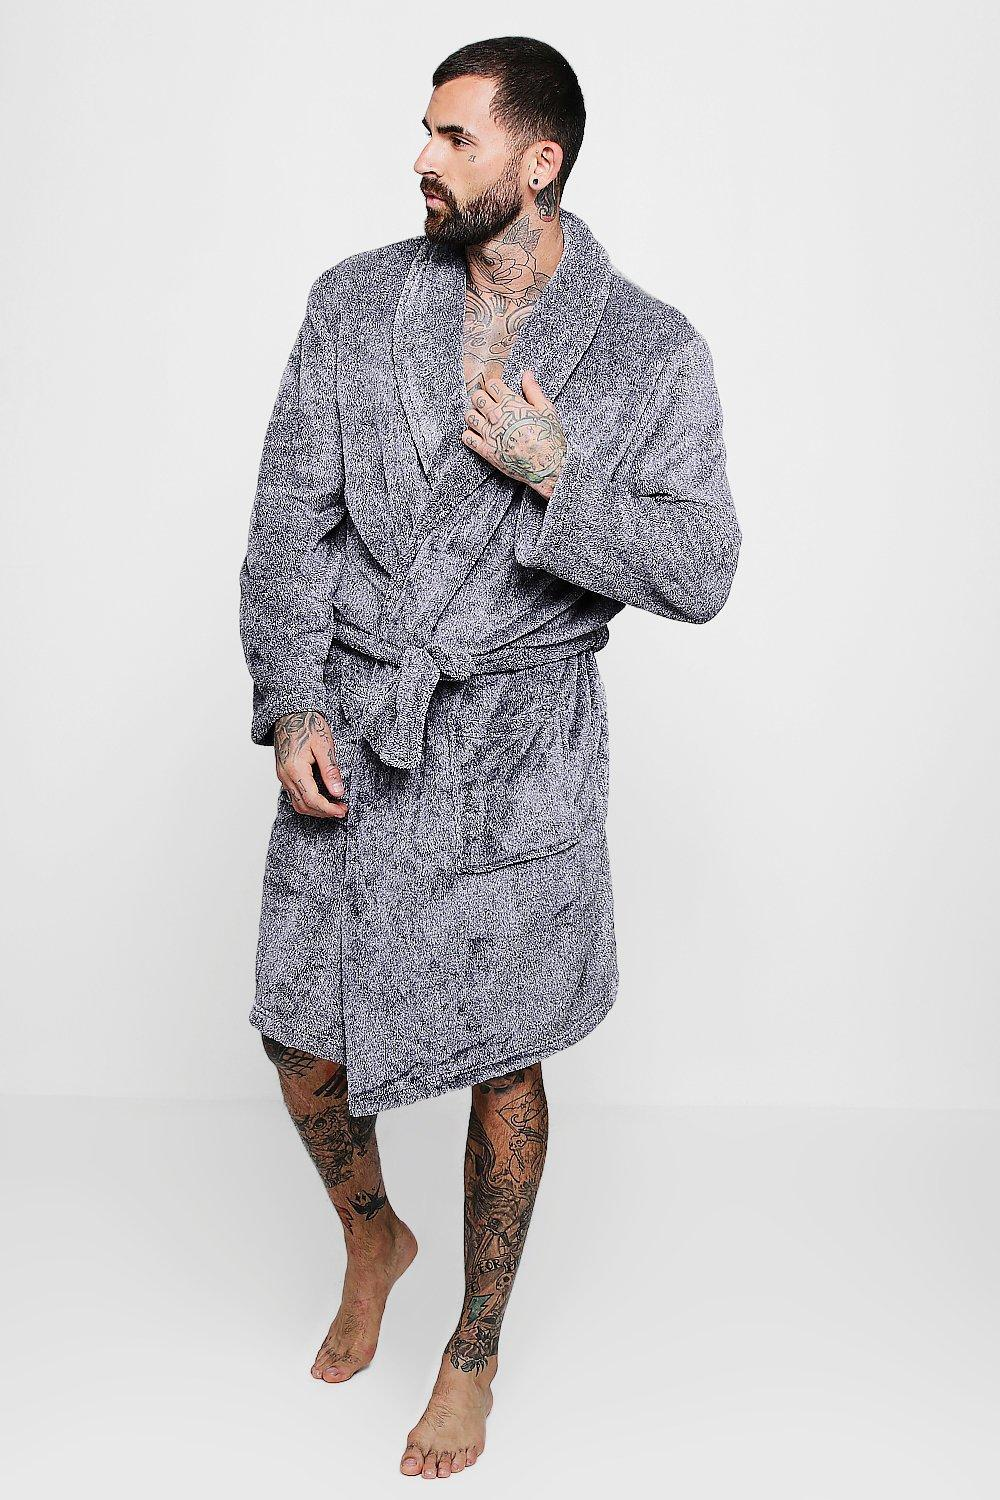 e1f3a59f21db BoohooMAN Mens Shaggy Fleece Robe With Contrast Lining in Gray for ...